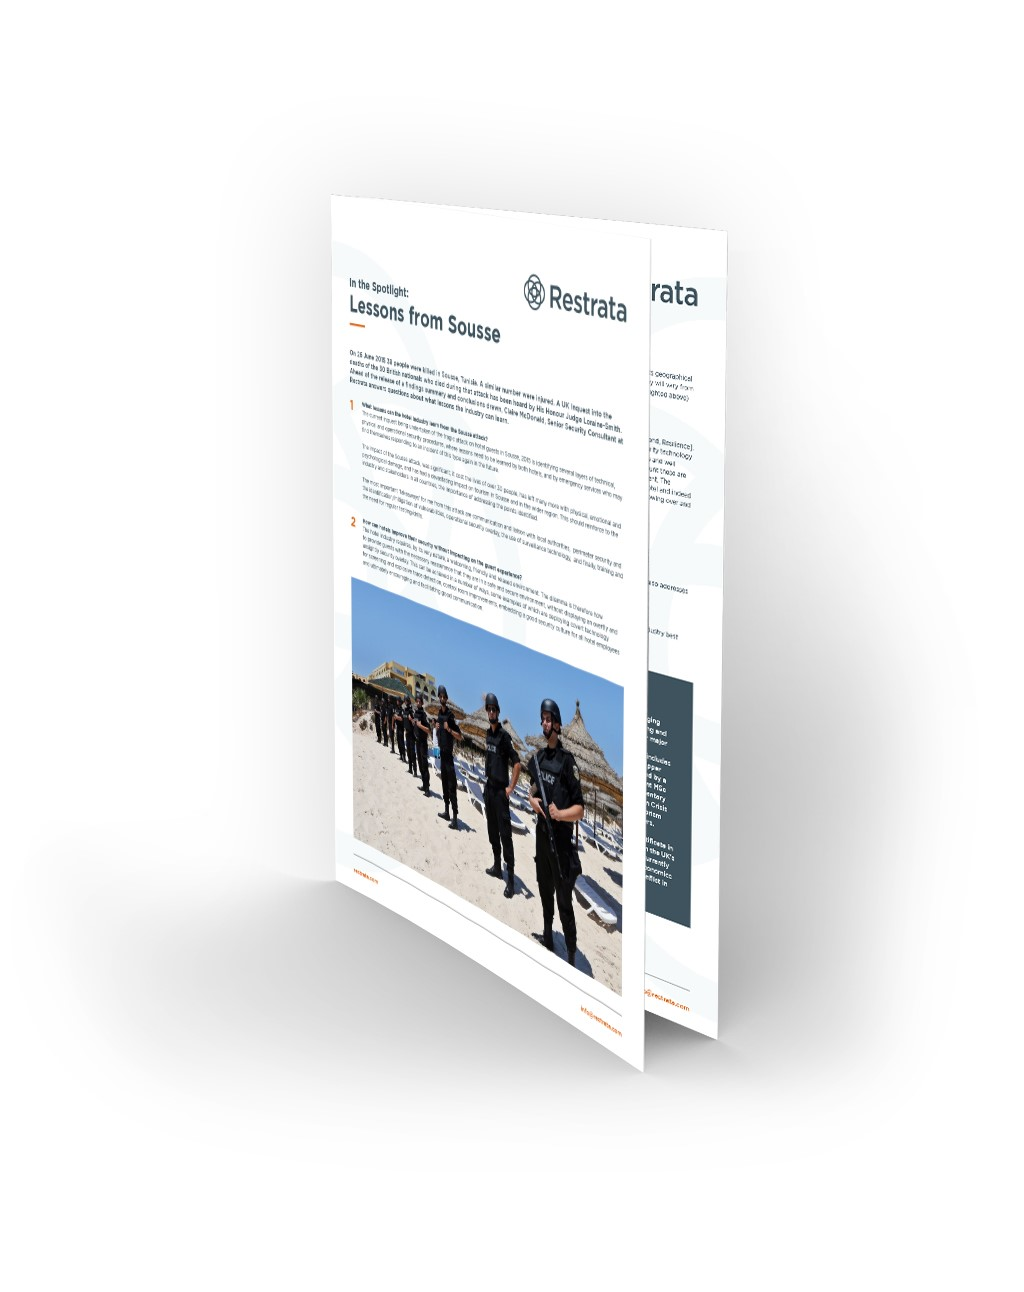 This document includes answers provided by Claire McDonald, Restrata Senior Security Consultant regarding lessons that can be learned after this devastating attack and what should be done within the tourism and leisure industry in order to prevent such attacks in the future.